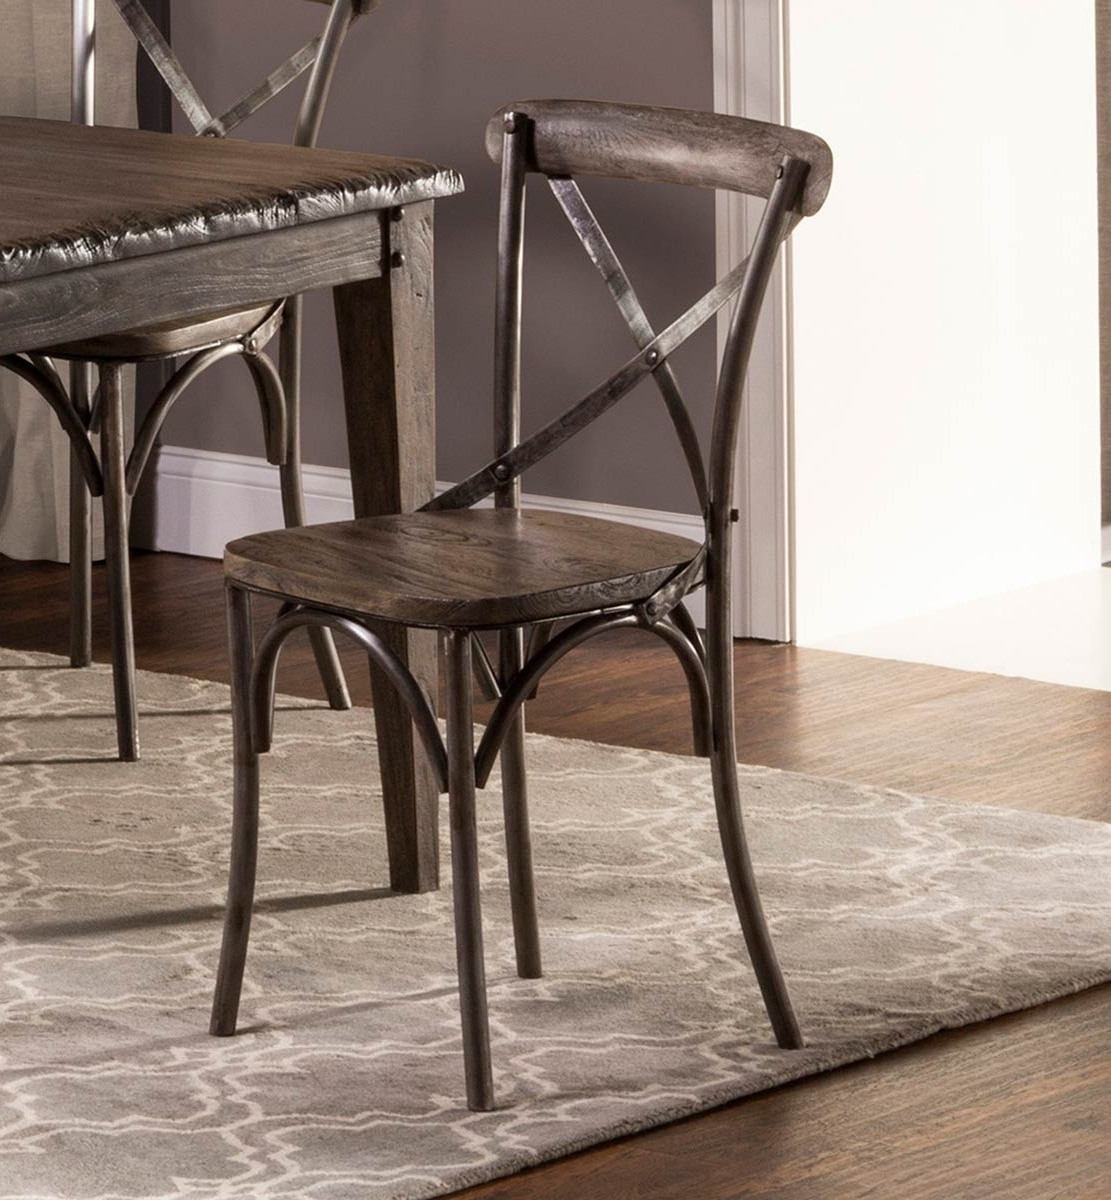 Most Recent Burton Metal Side Chairs With Wooden Seat Intended For Hillsdale Lorient X Back Dining Chair – Washed Charcoal Gray/aged (View 12 of 20)